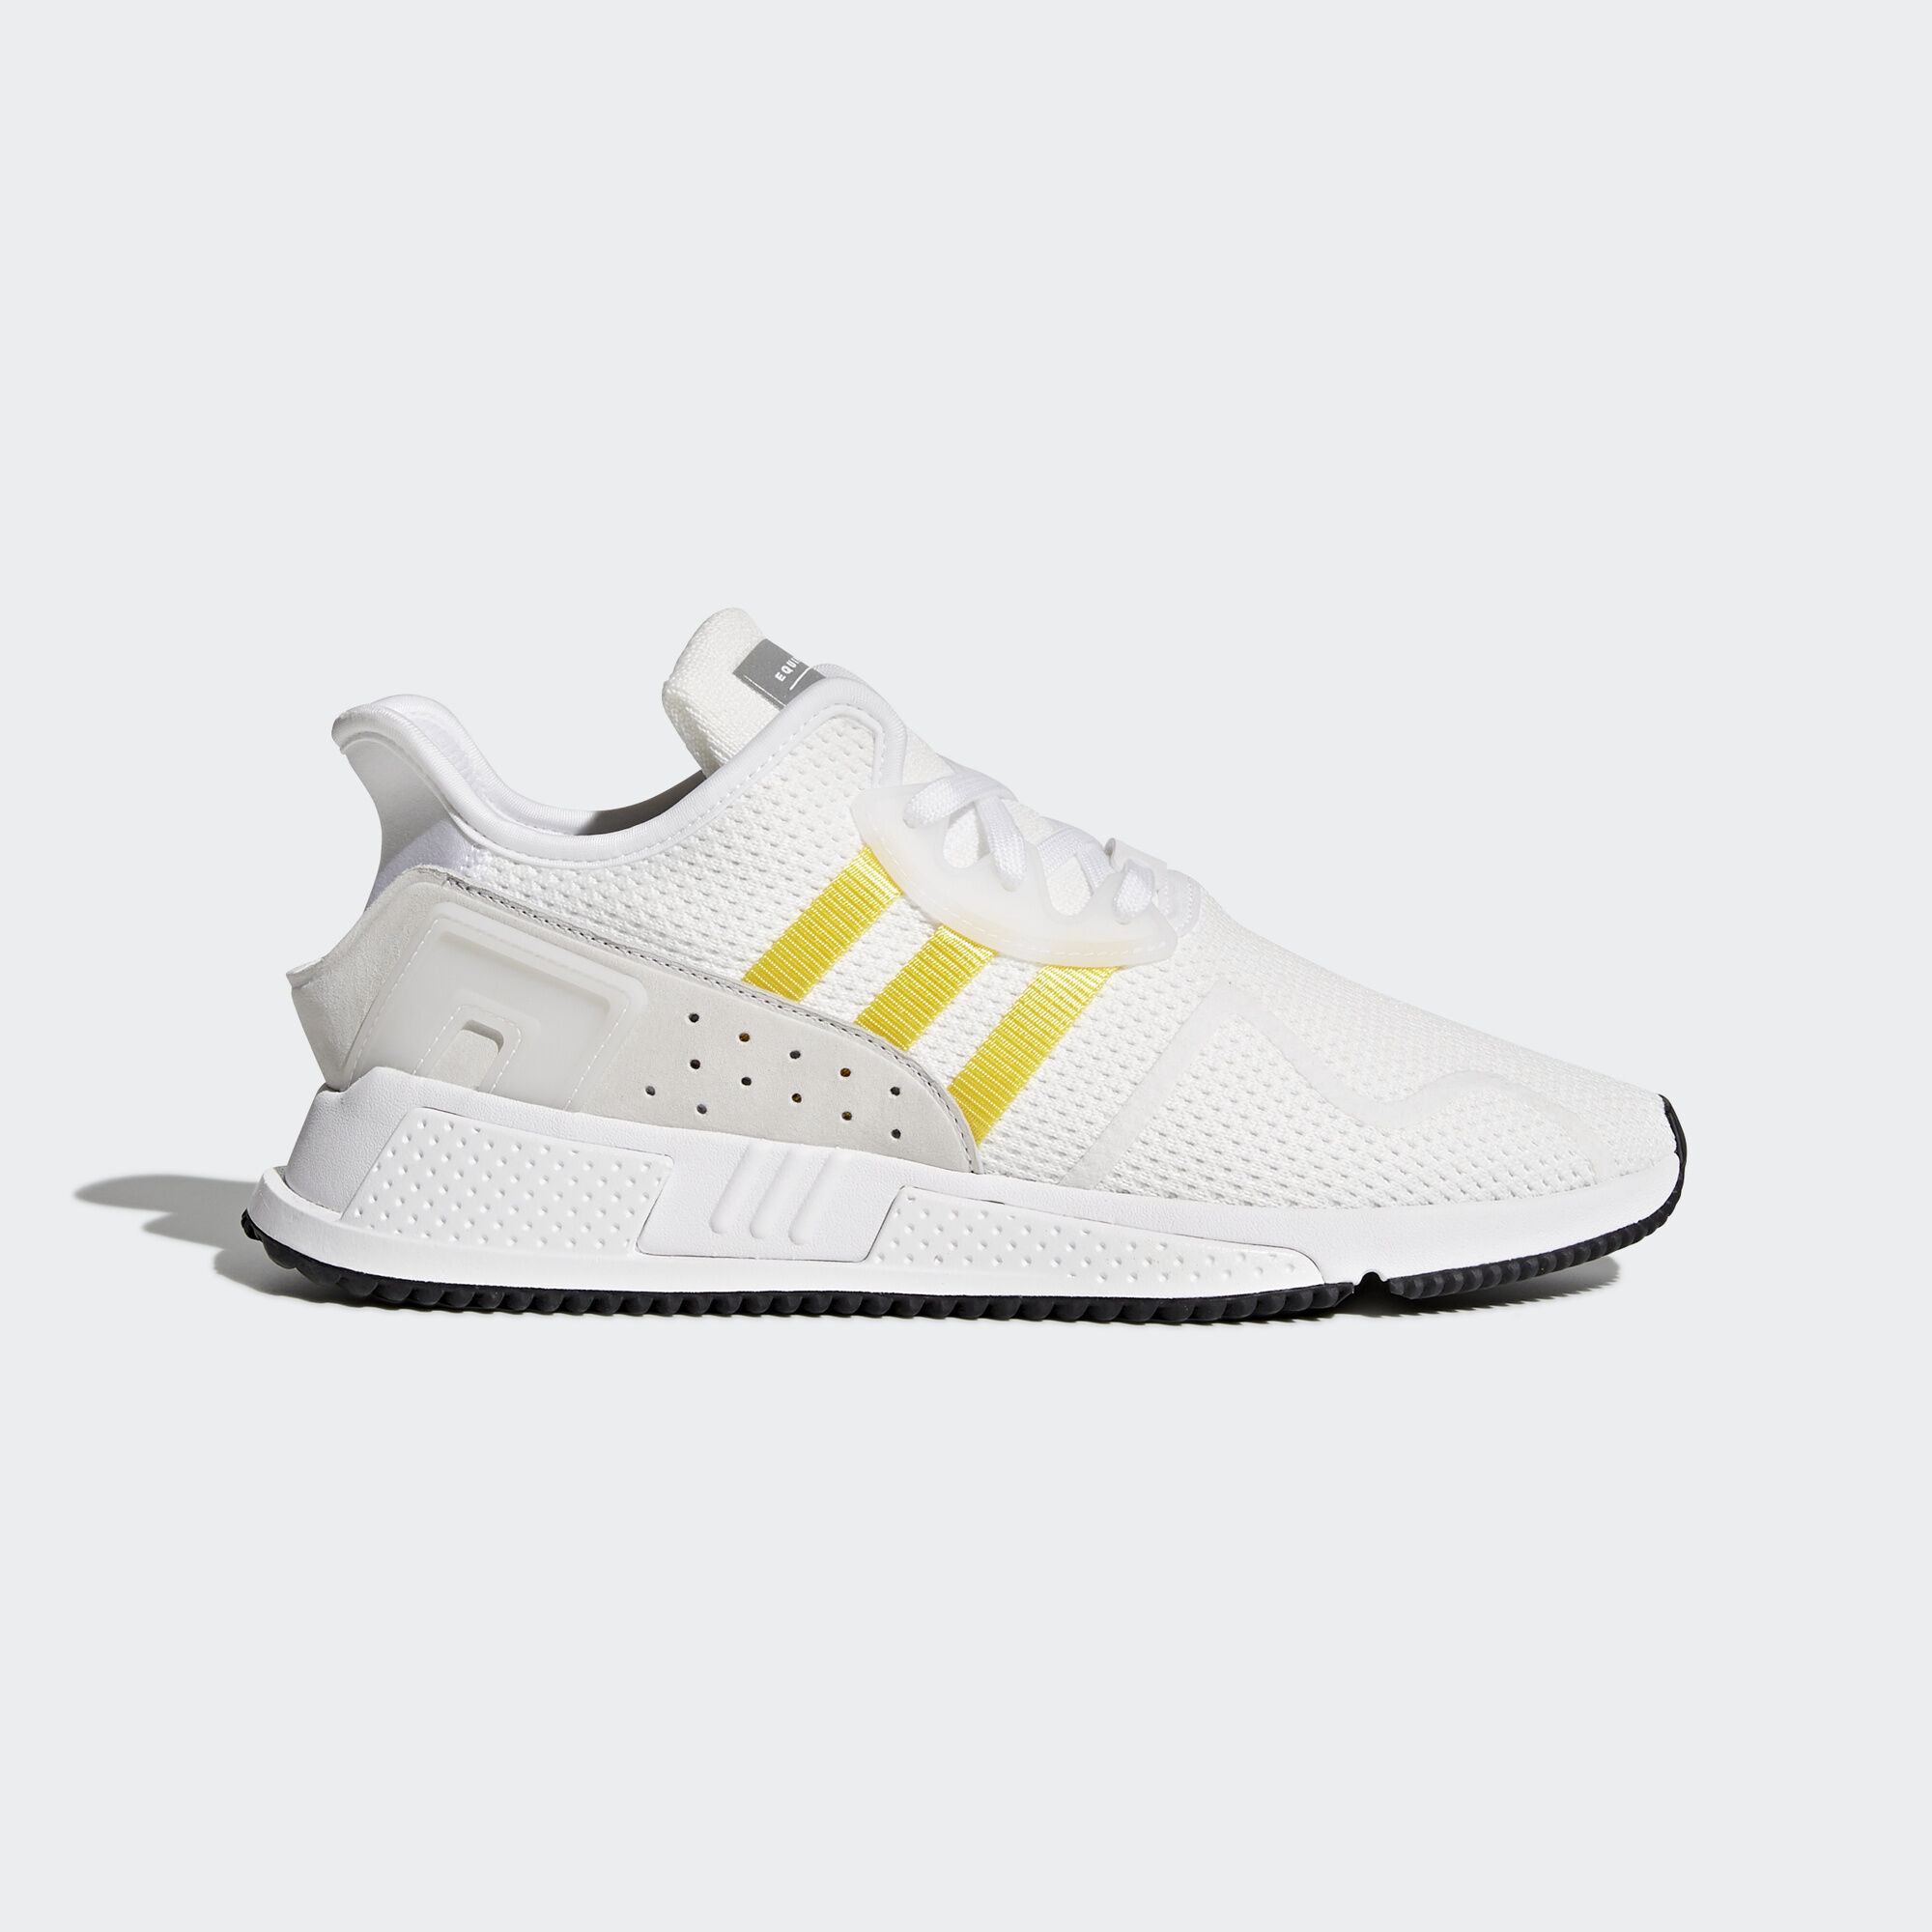 1bea737d7415 ... support mid adv primeknit black d392c 8187e  inexpensive adidas eqt  cushion adv shoes ftwr white eqt yellow silver metallic cq2375 d23f5 43893